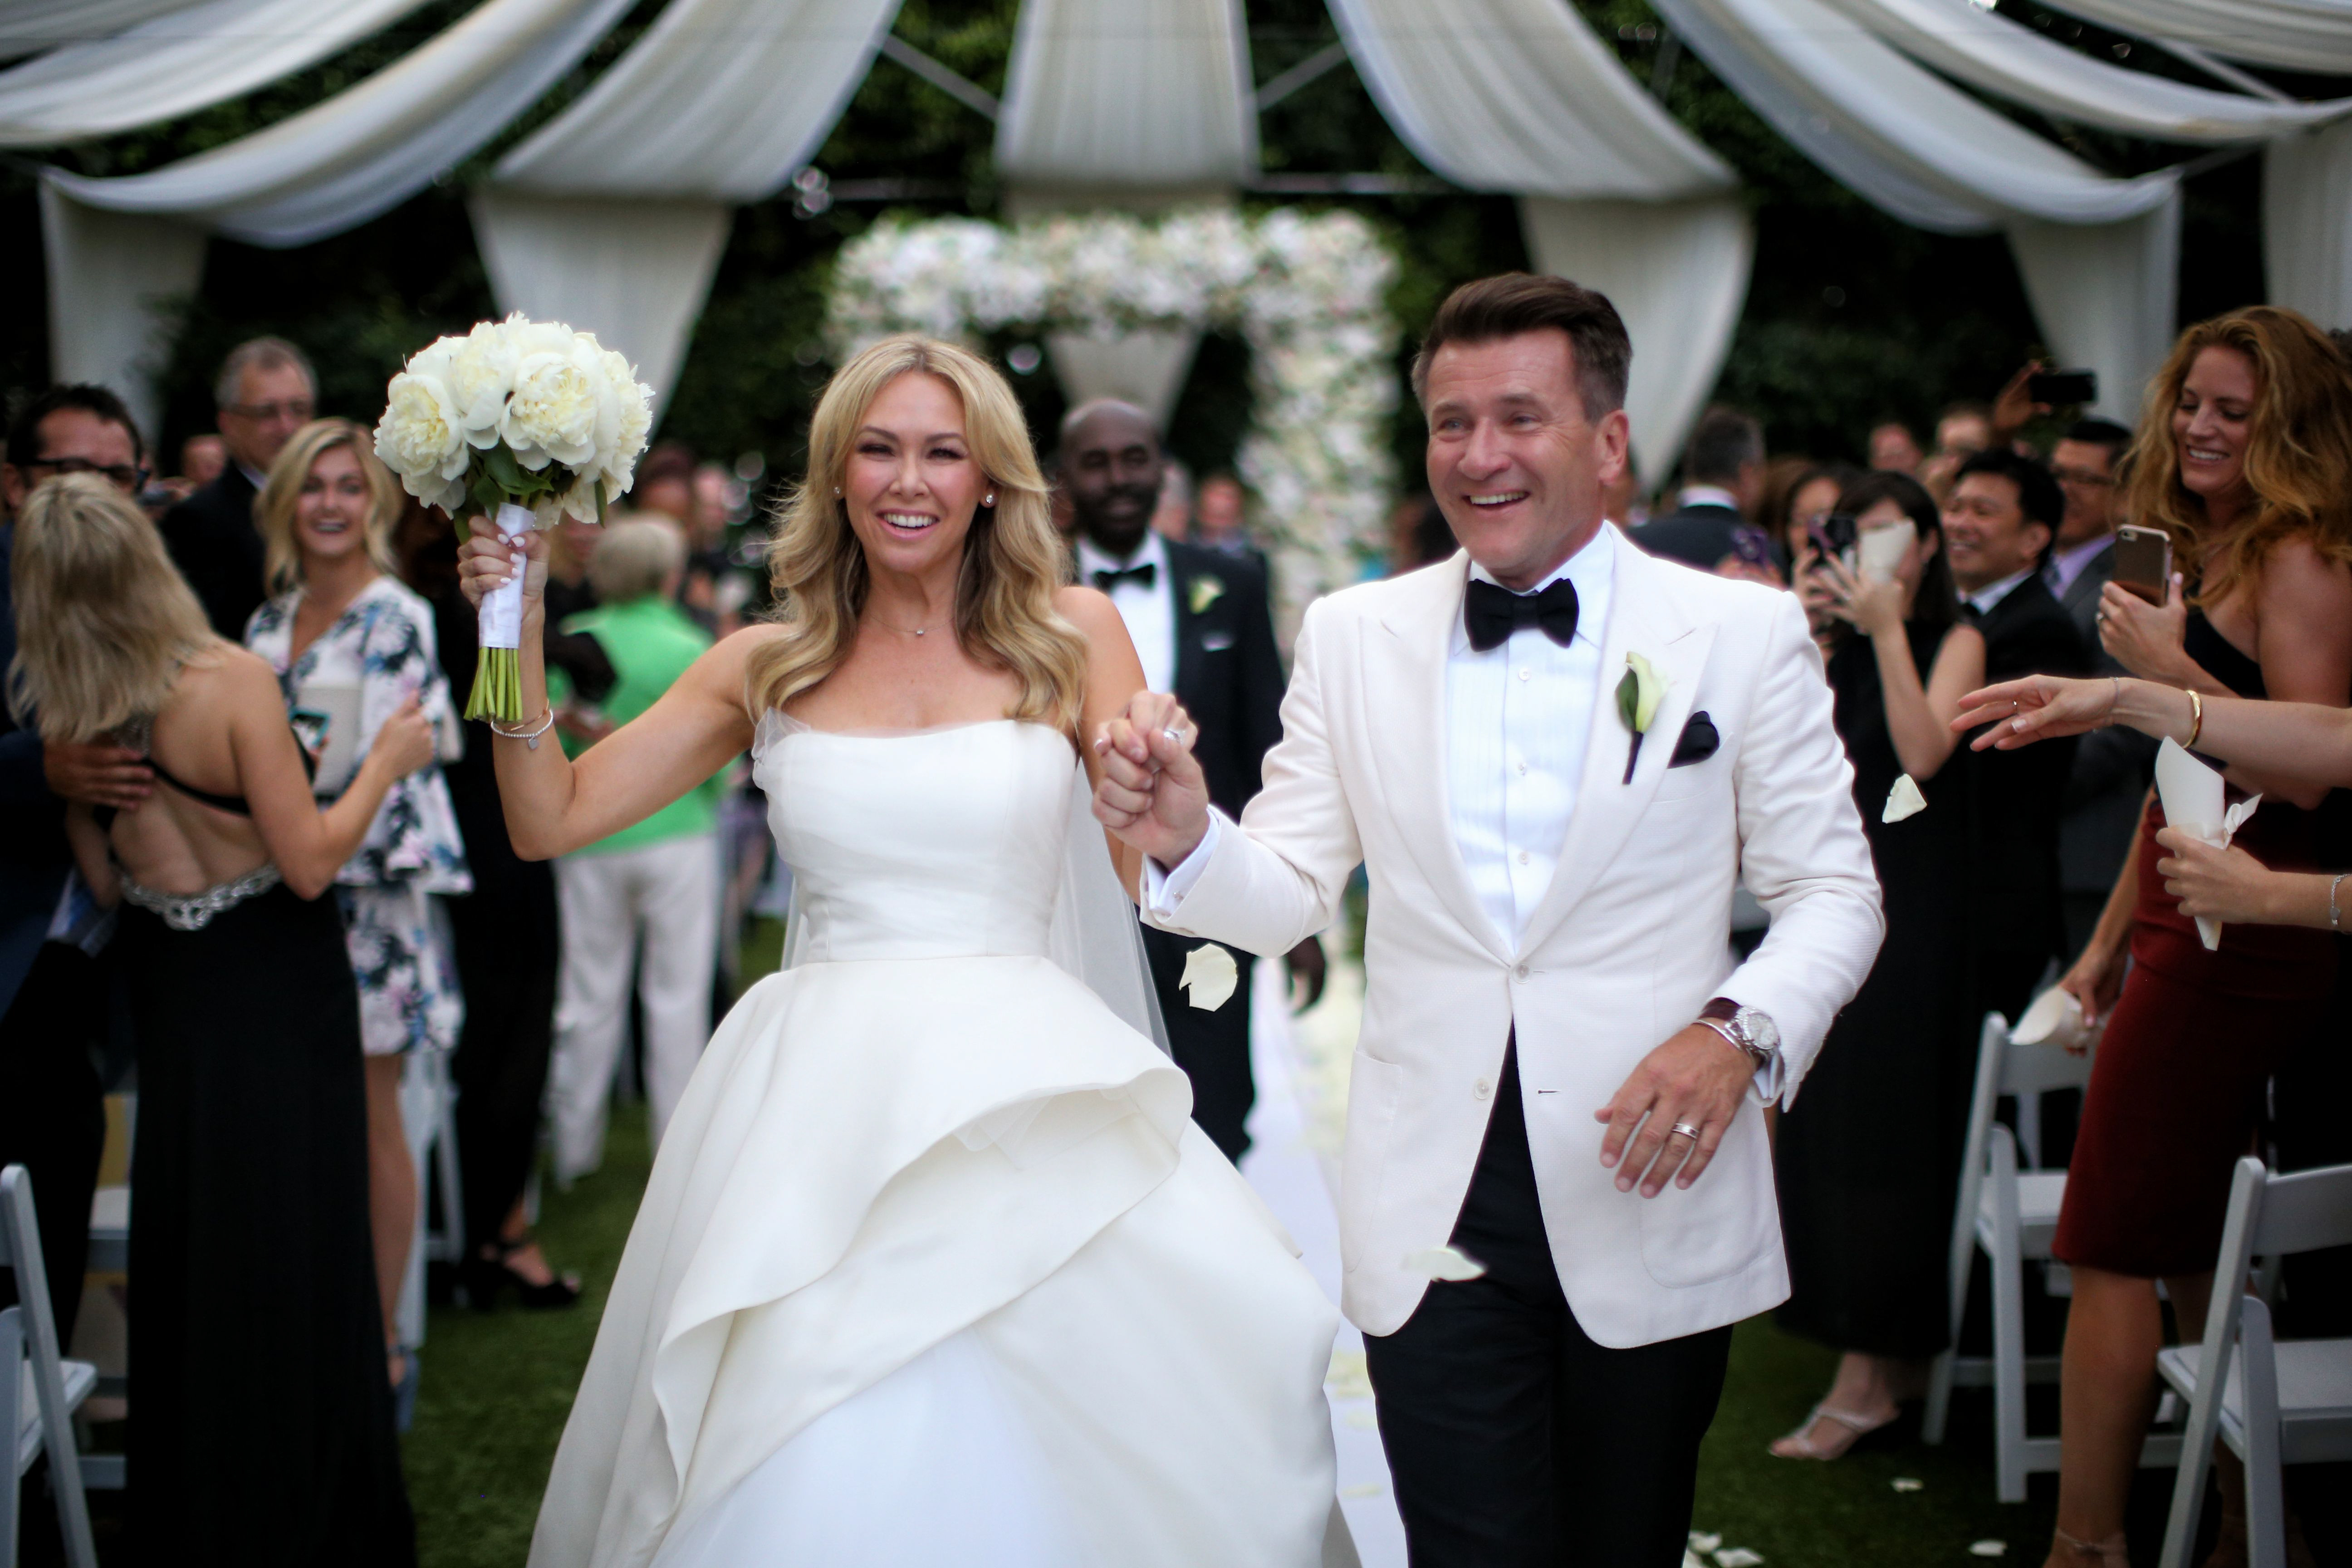 Kym Johnson Robert Herjavec Wedding